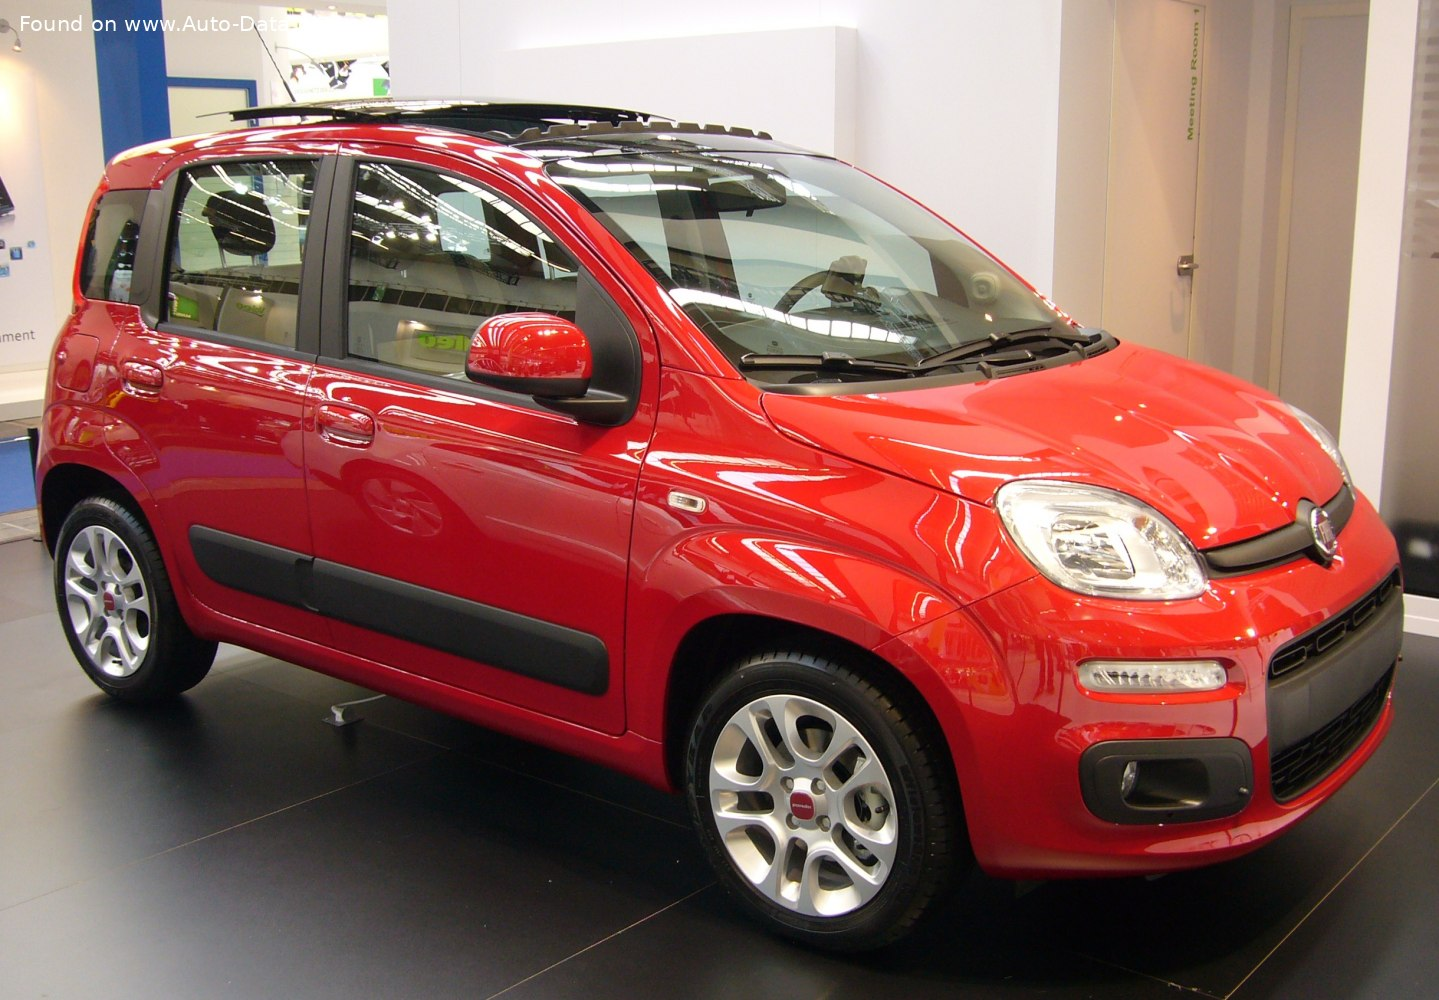 2018 Fiat Panda Iii 319 1 2 69 Hp Technical Specs Data Fuel Consumption Dimensions